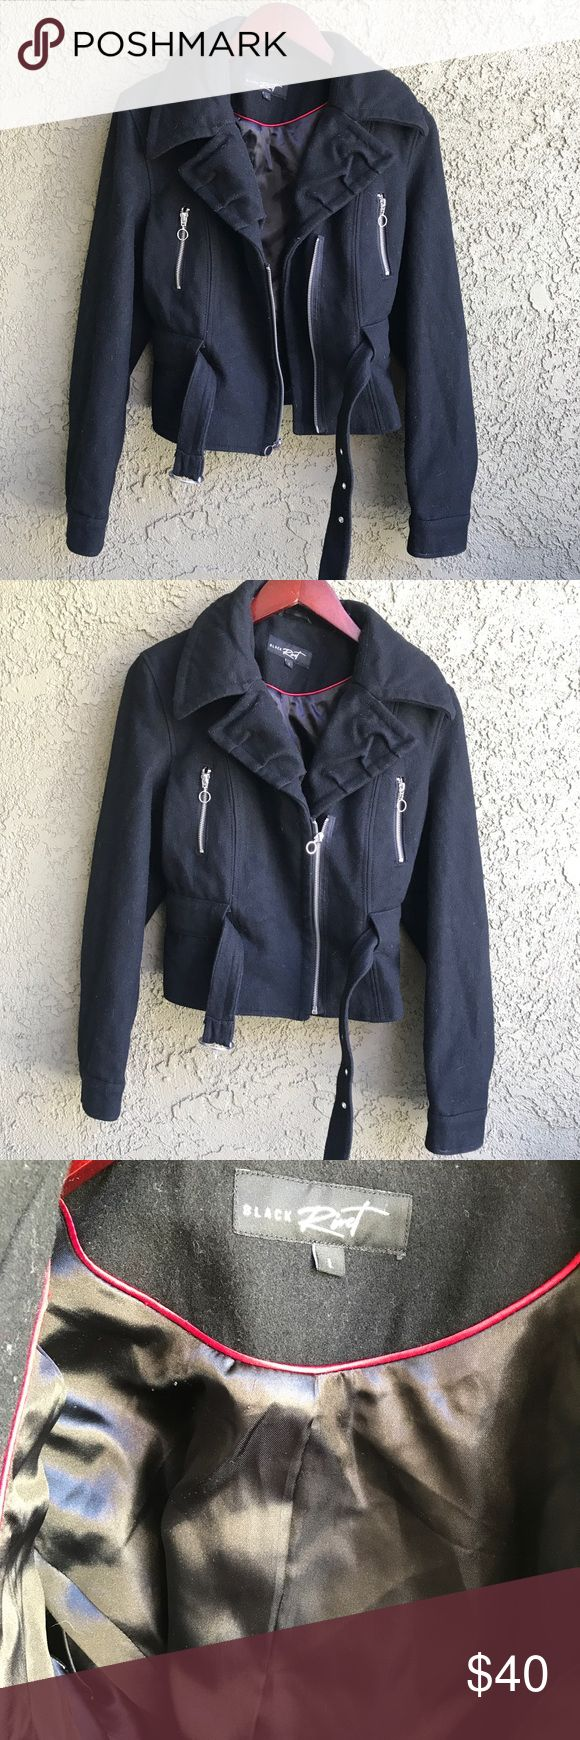 Black Rivet Zip up Wool Pea Coat sz L Black Rivet pea coat, women's size L. Sold at Nordstrom and Wilson's Leather. Black in color with silver hardware. Zip up front chest pockets. Waist belt can be cinched to emphasize waist. Cuffed sleeves. Fully lined inside. Wool/polyester/nylon blend. EUC - no visible flaws but may have gotten dusty from storage.   Measurements:  shoulder to shoulder: 16.75 pit to pit: 17.5 length: 20.75 Black Rivet Jackets & Coats Pea Coats